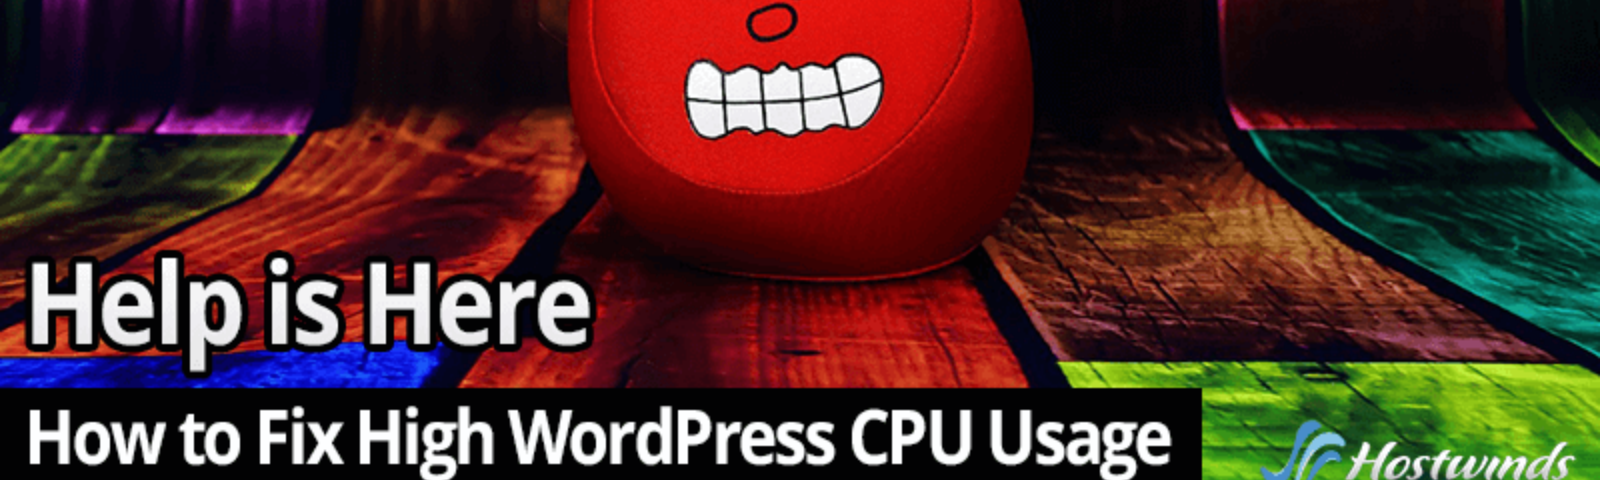 How to Fix Your High WordPress CPU Usage Problem - Hostwinds Blog